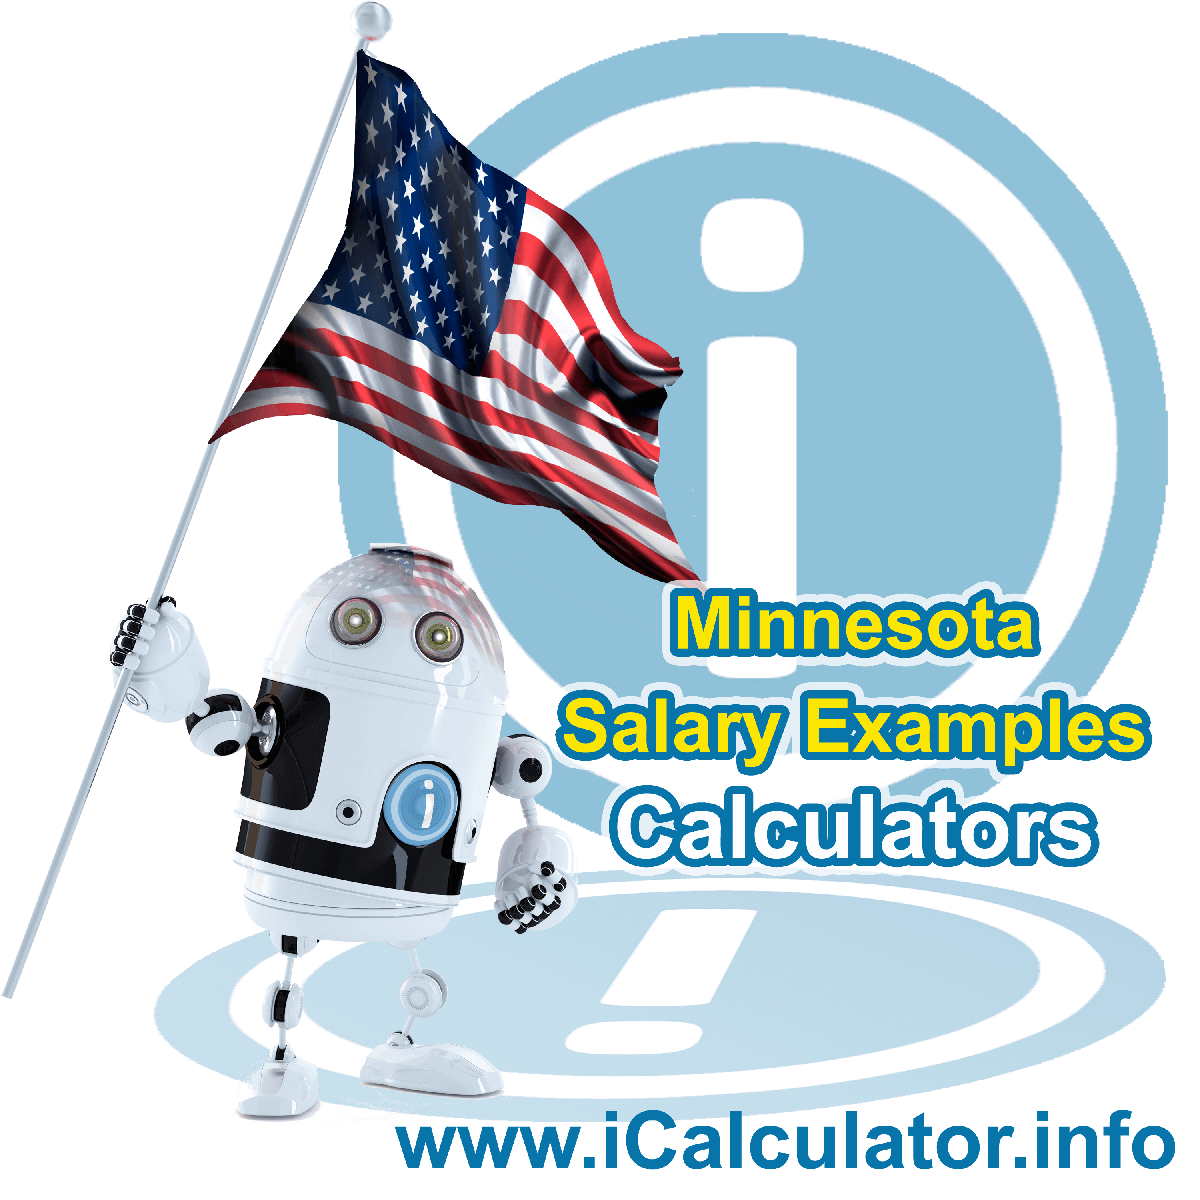 Minnesota Salary Example for $170,000.00 in 2020 | iCalculator | $170,000.00 salary example for employee and employer paying Minnesota State tincome taxes. Detailed salary after tax calculation including Minnesota State Tax, Federal State Tax, Medicare Deductions, Social Security, Capital Gains and other income tax and salary deductions complete with supporting Minnesota state tax tables